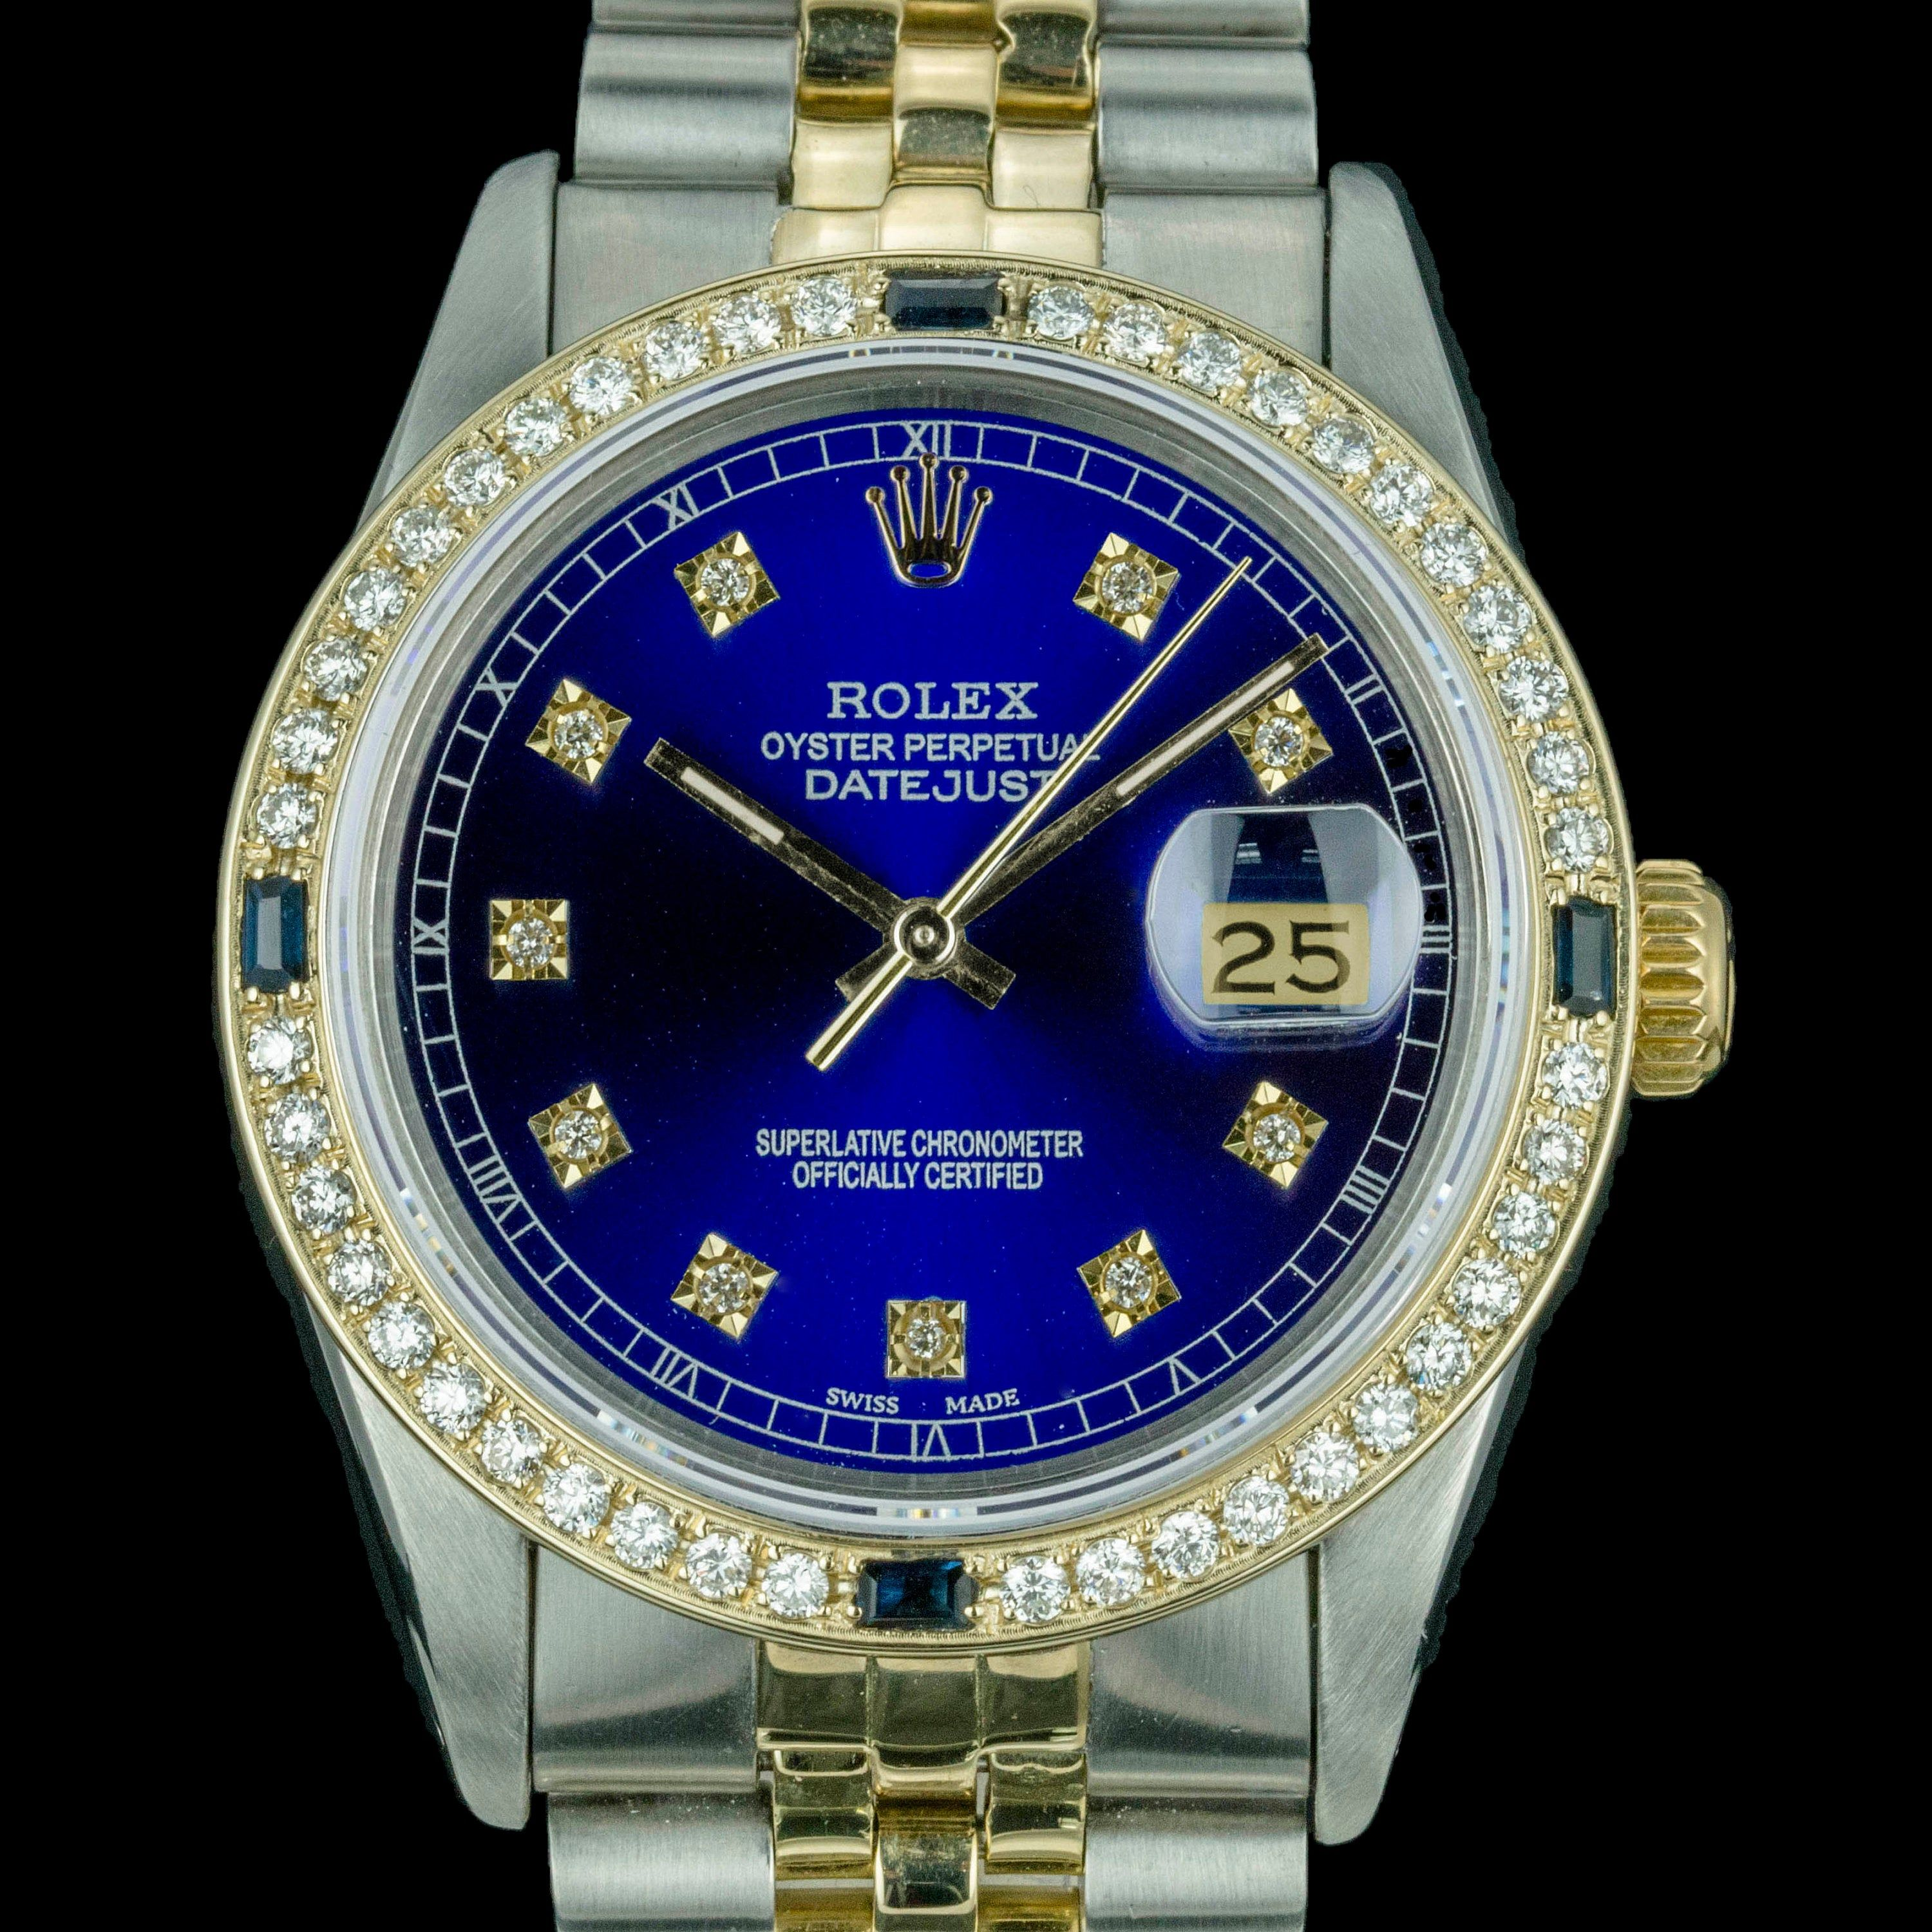 Mens Rolex Watch Datejust 16013 18k Yellow Gold & Stainless Steel Royal Blue w 1.35 ctDiamonds and Sapphires #stainlesssteelrolex